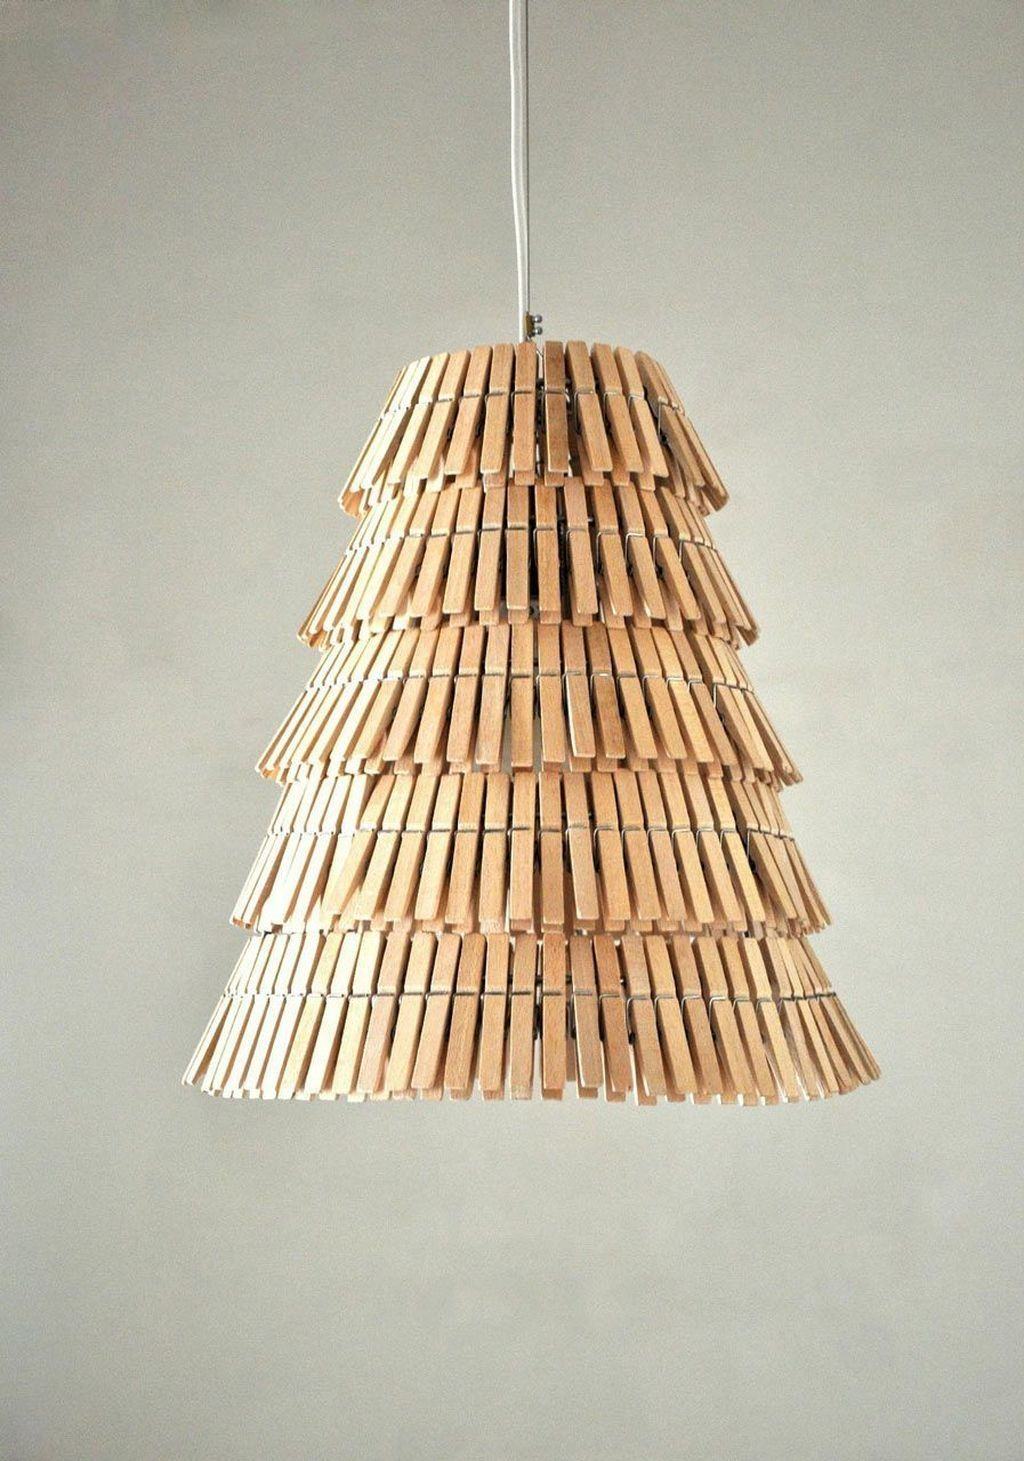 Wood clothespins pendant lamp Unconventional DIY Craft Ideas You Can Do With Wood Clothespins